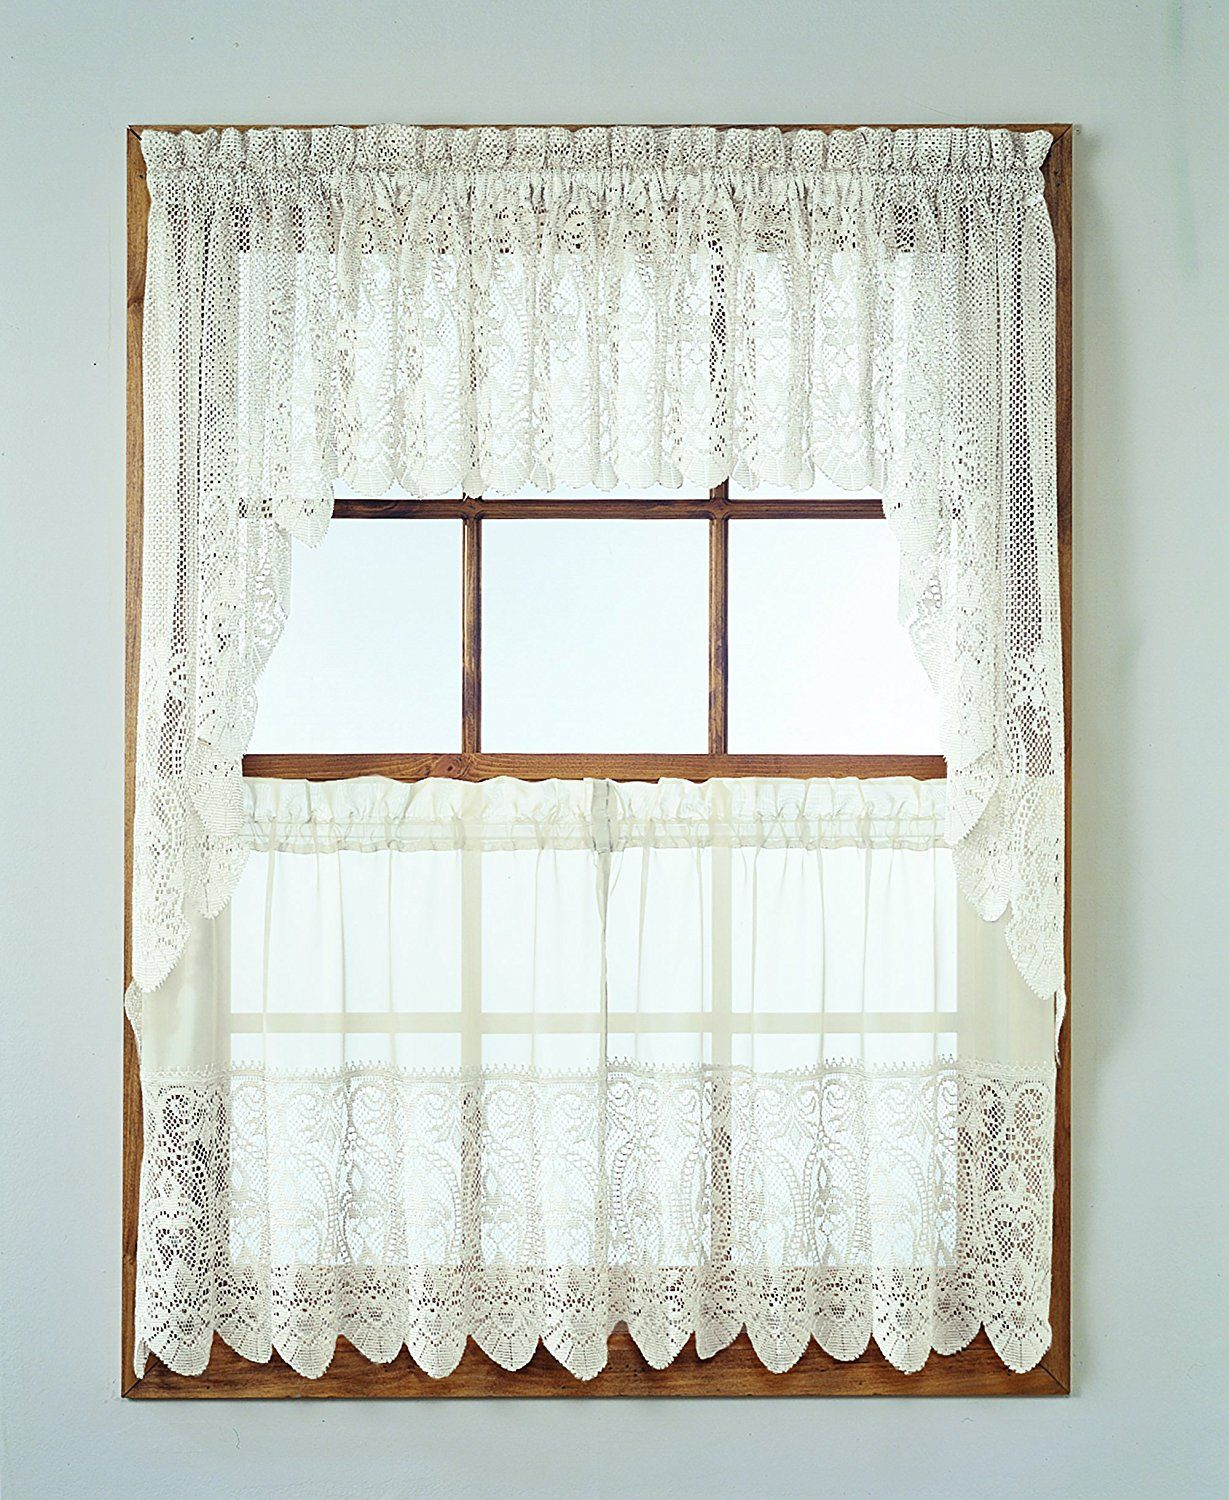 No 918 joy tier kitchen curtain swag valance 60 by 38 inch ivory kitchens solutioingenieria Images